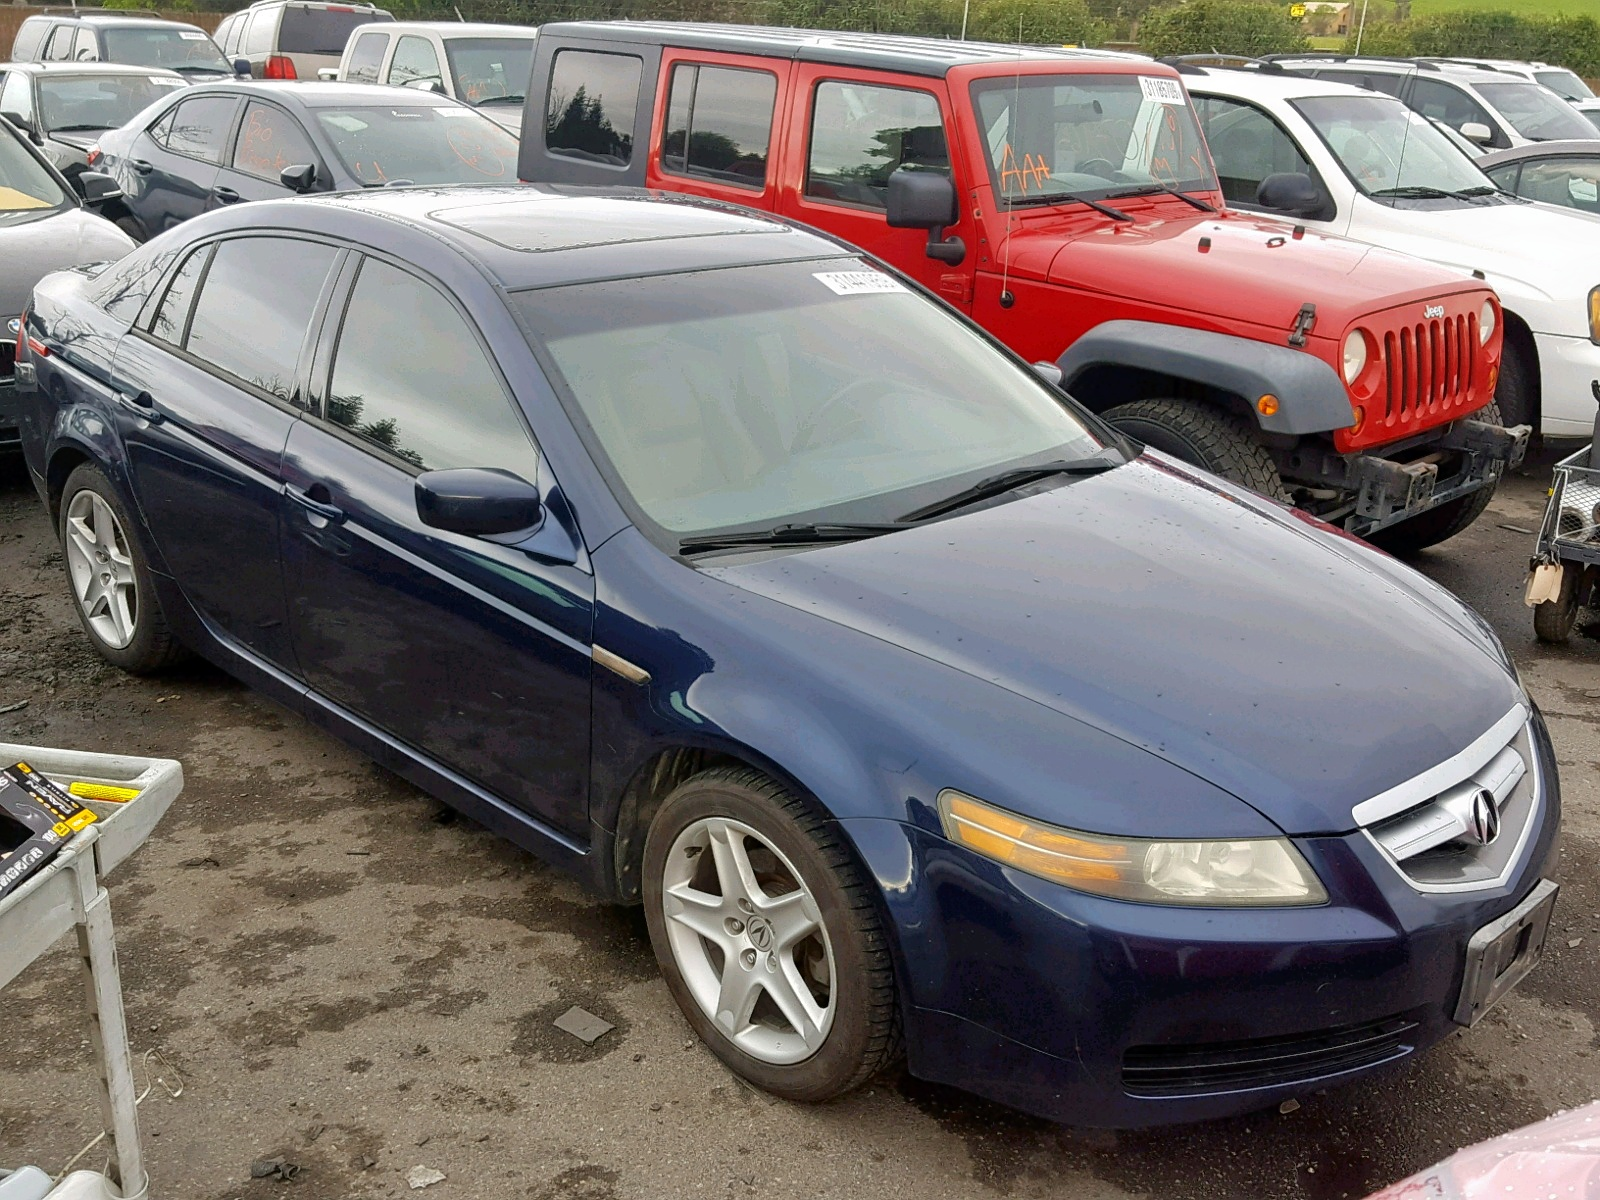 hight resolution of 19uua66295a040557 2005 acura tl 3 2l left view 19uua66295a040557